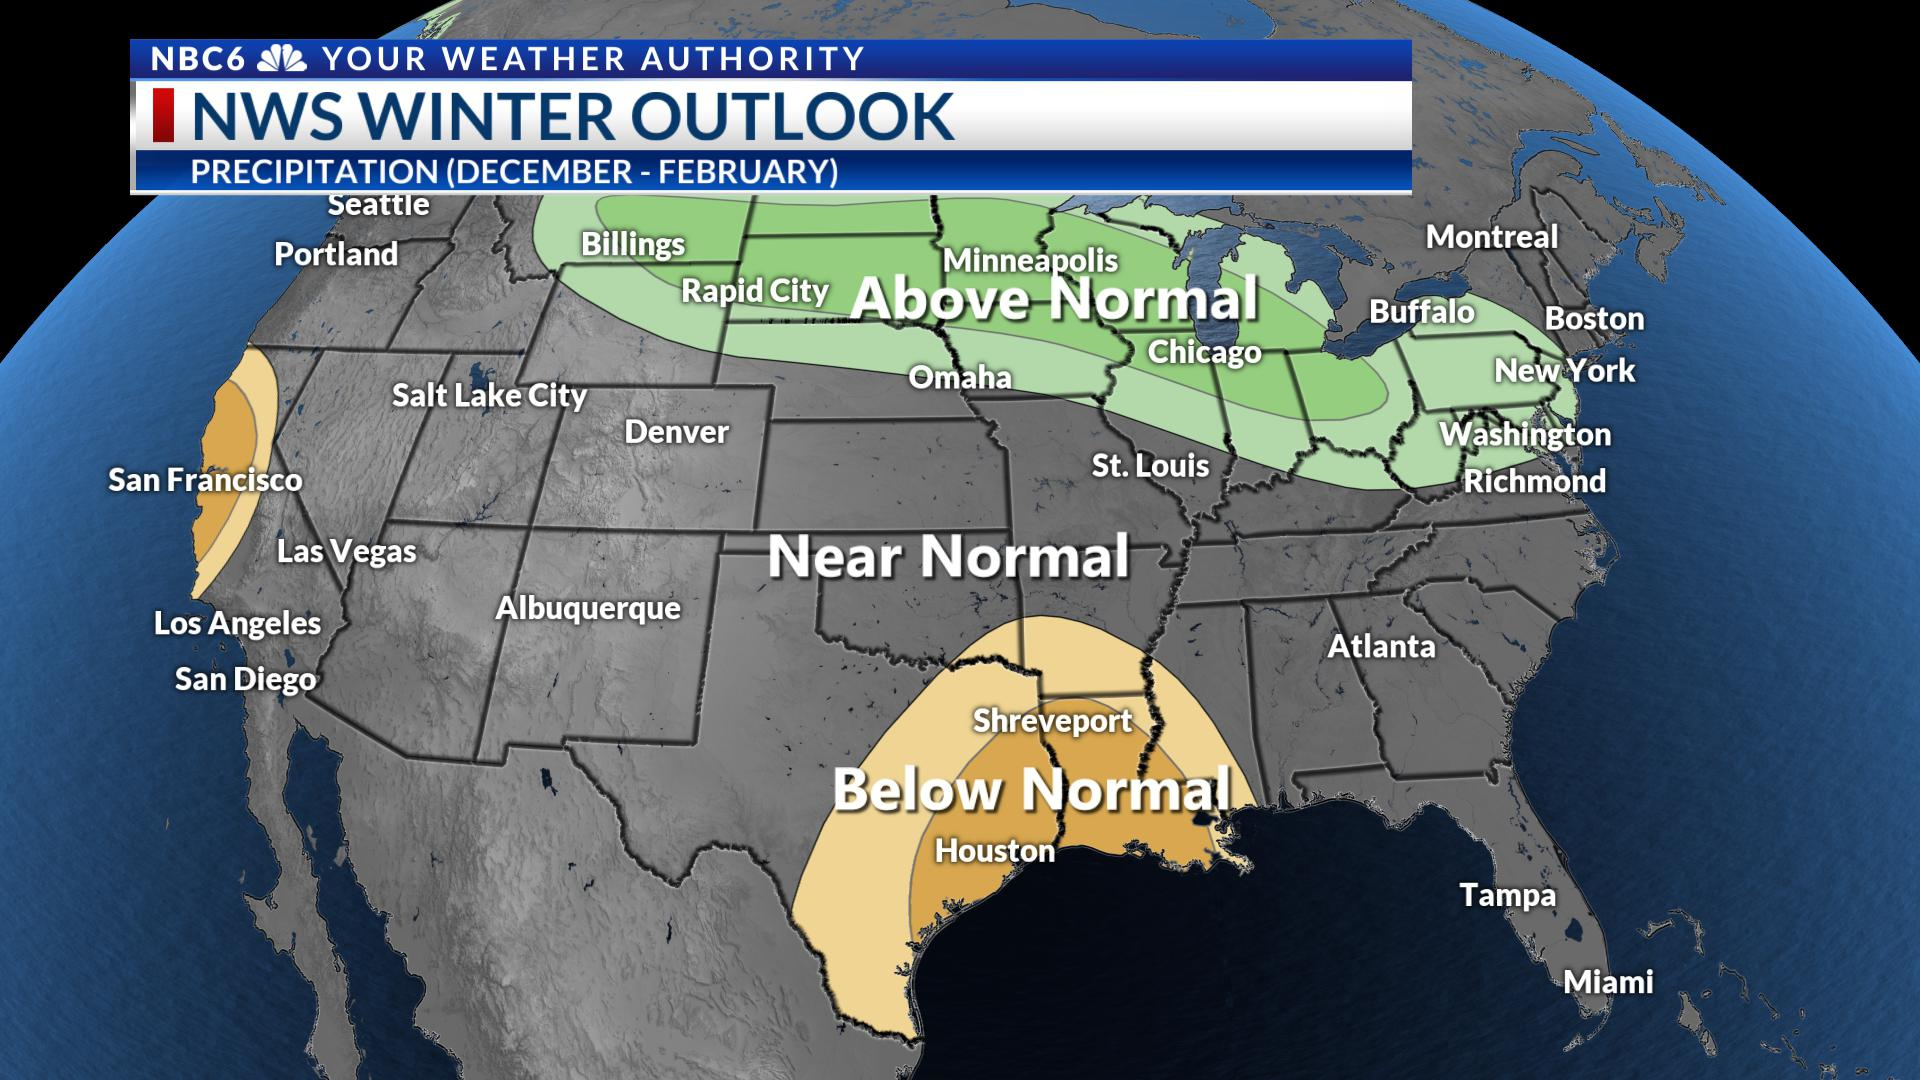 Weather blog: A final outlook for the upcoming winter